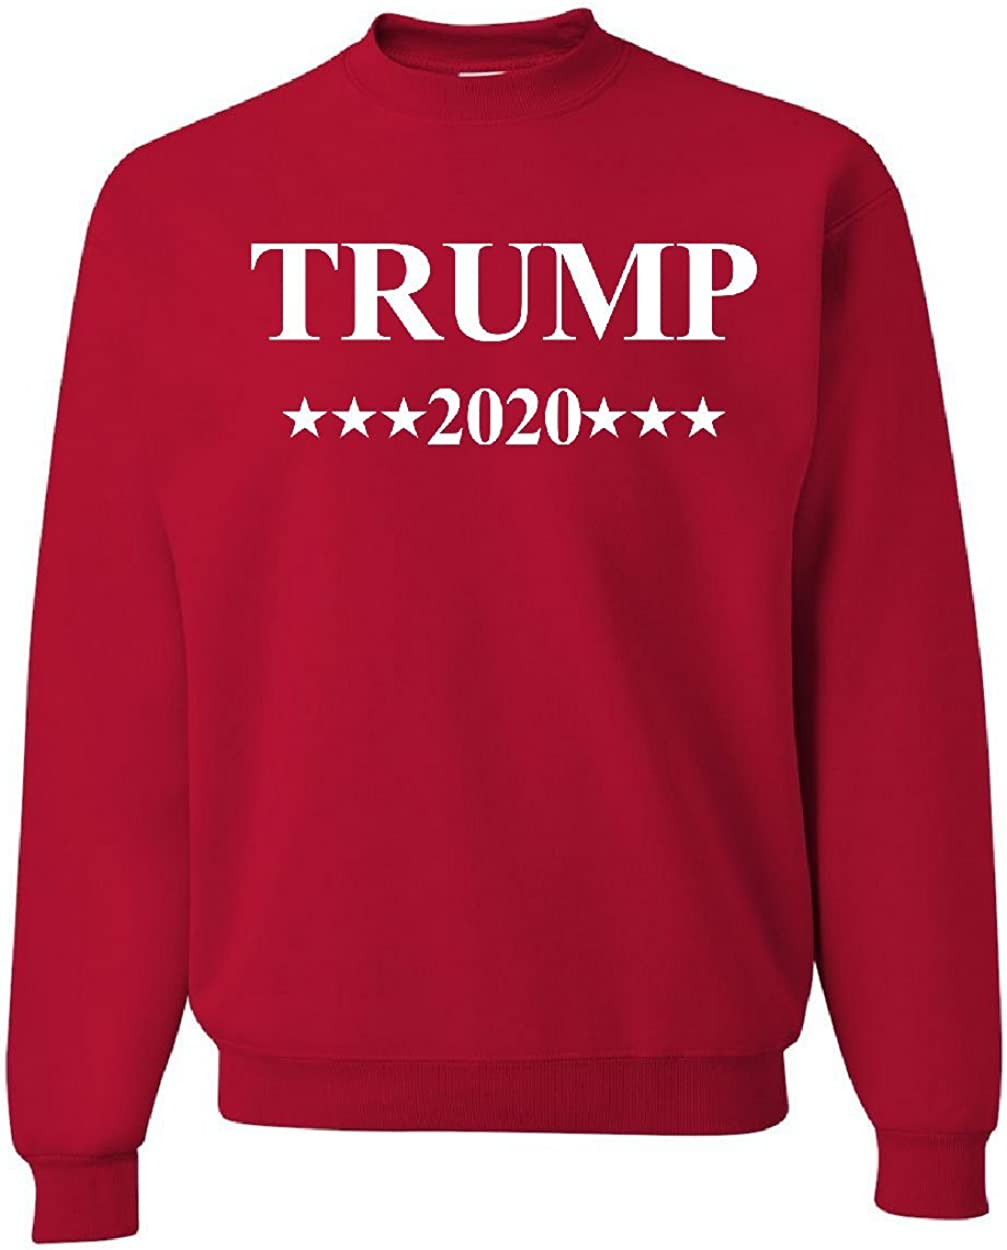 Tee Hunt Trump 2020 MAGA Sweatshirt American President Republican Sweater